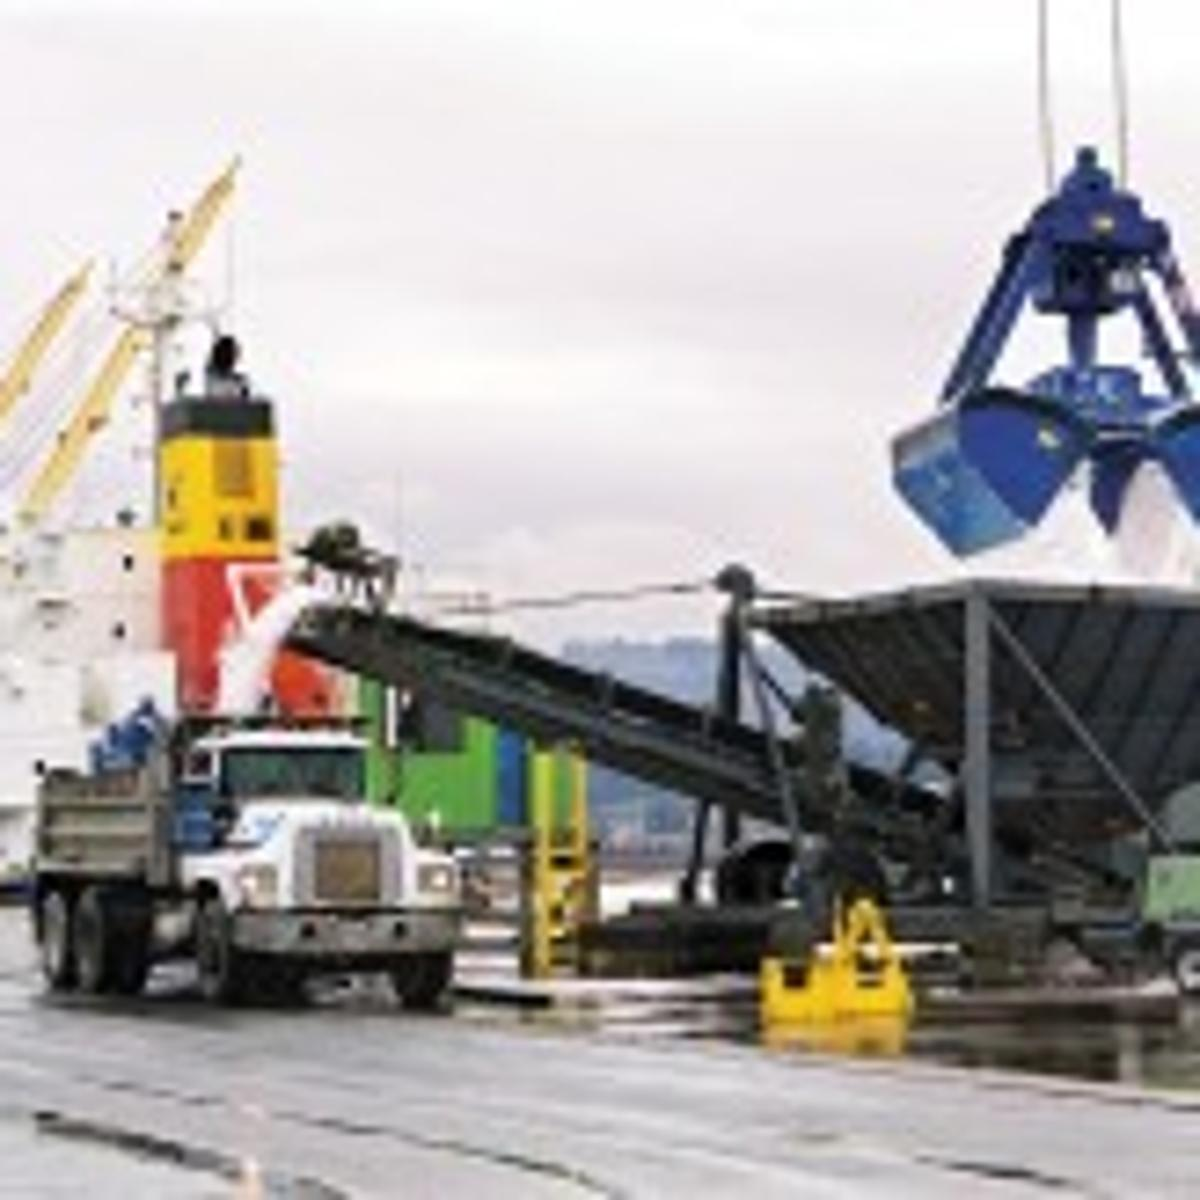 Winds of change: Port looks beyond recent boom | Local | tdn com